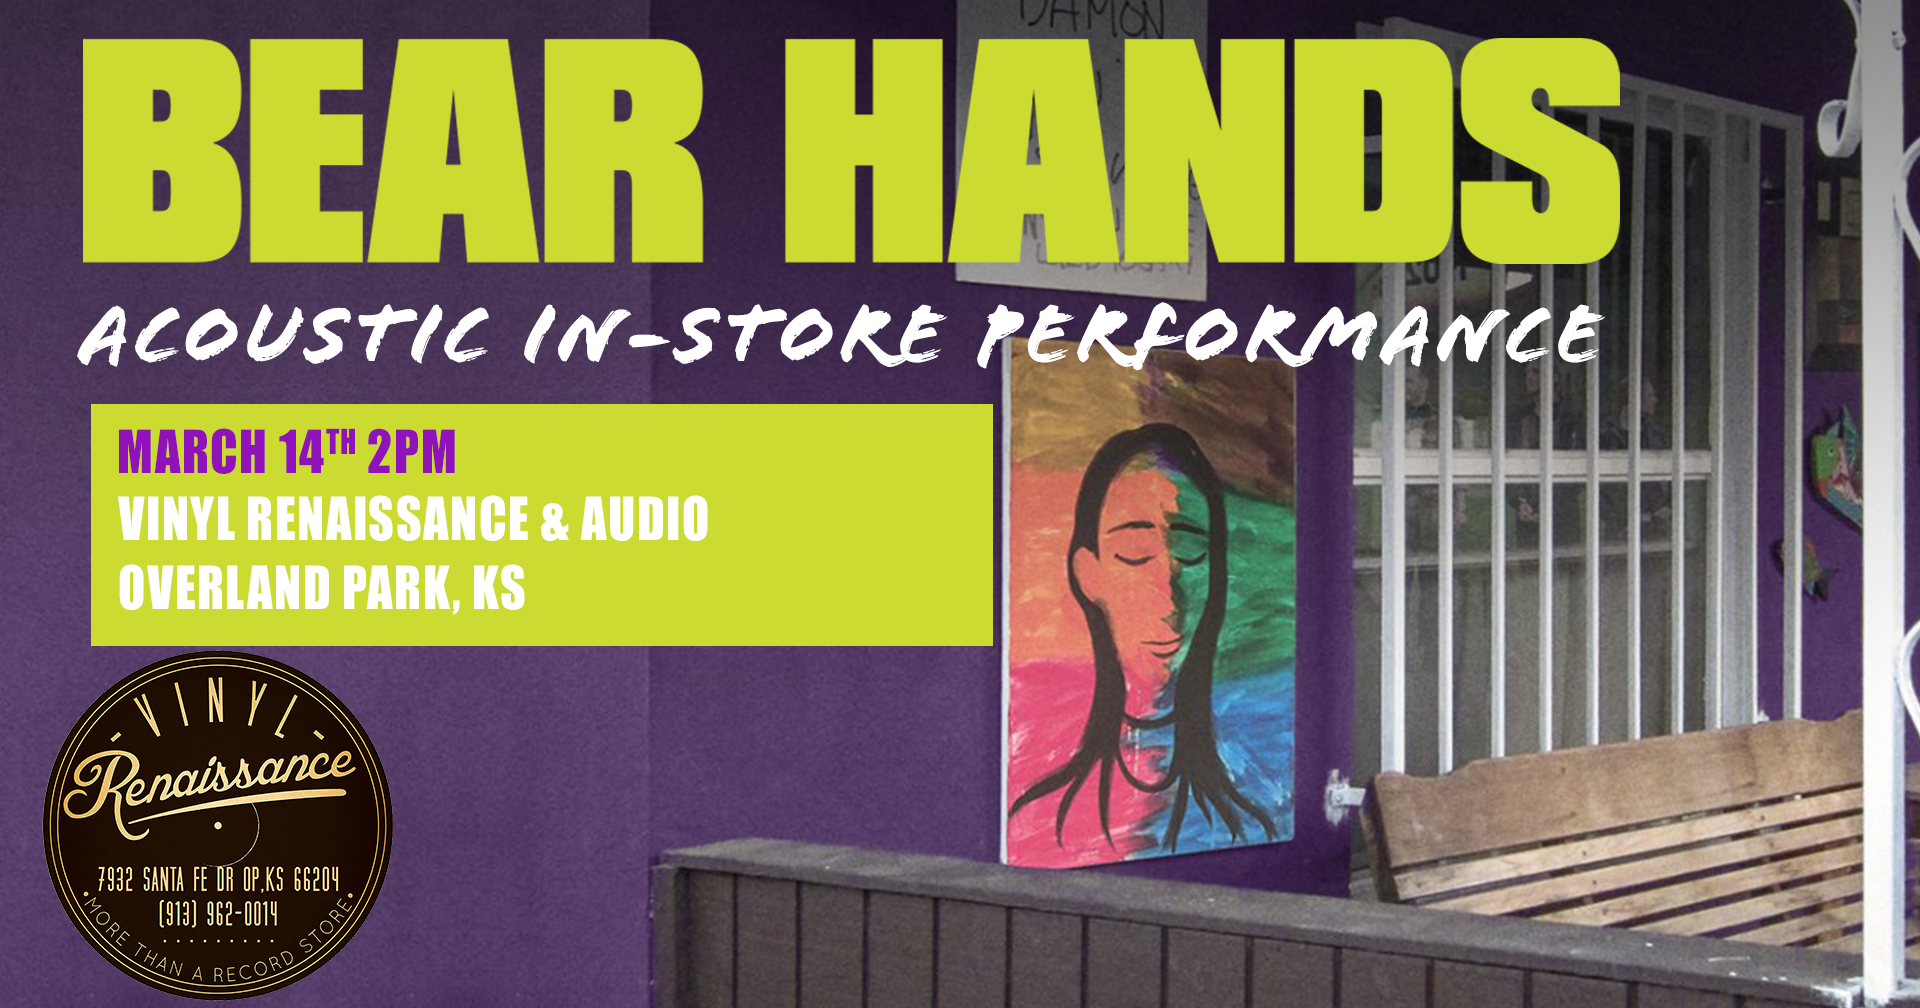 CANCELLED - Bear Hands | Vinyl Renaissance & Audio Acoustic In-Store Performance